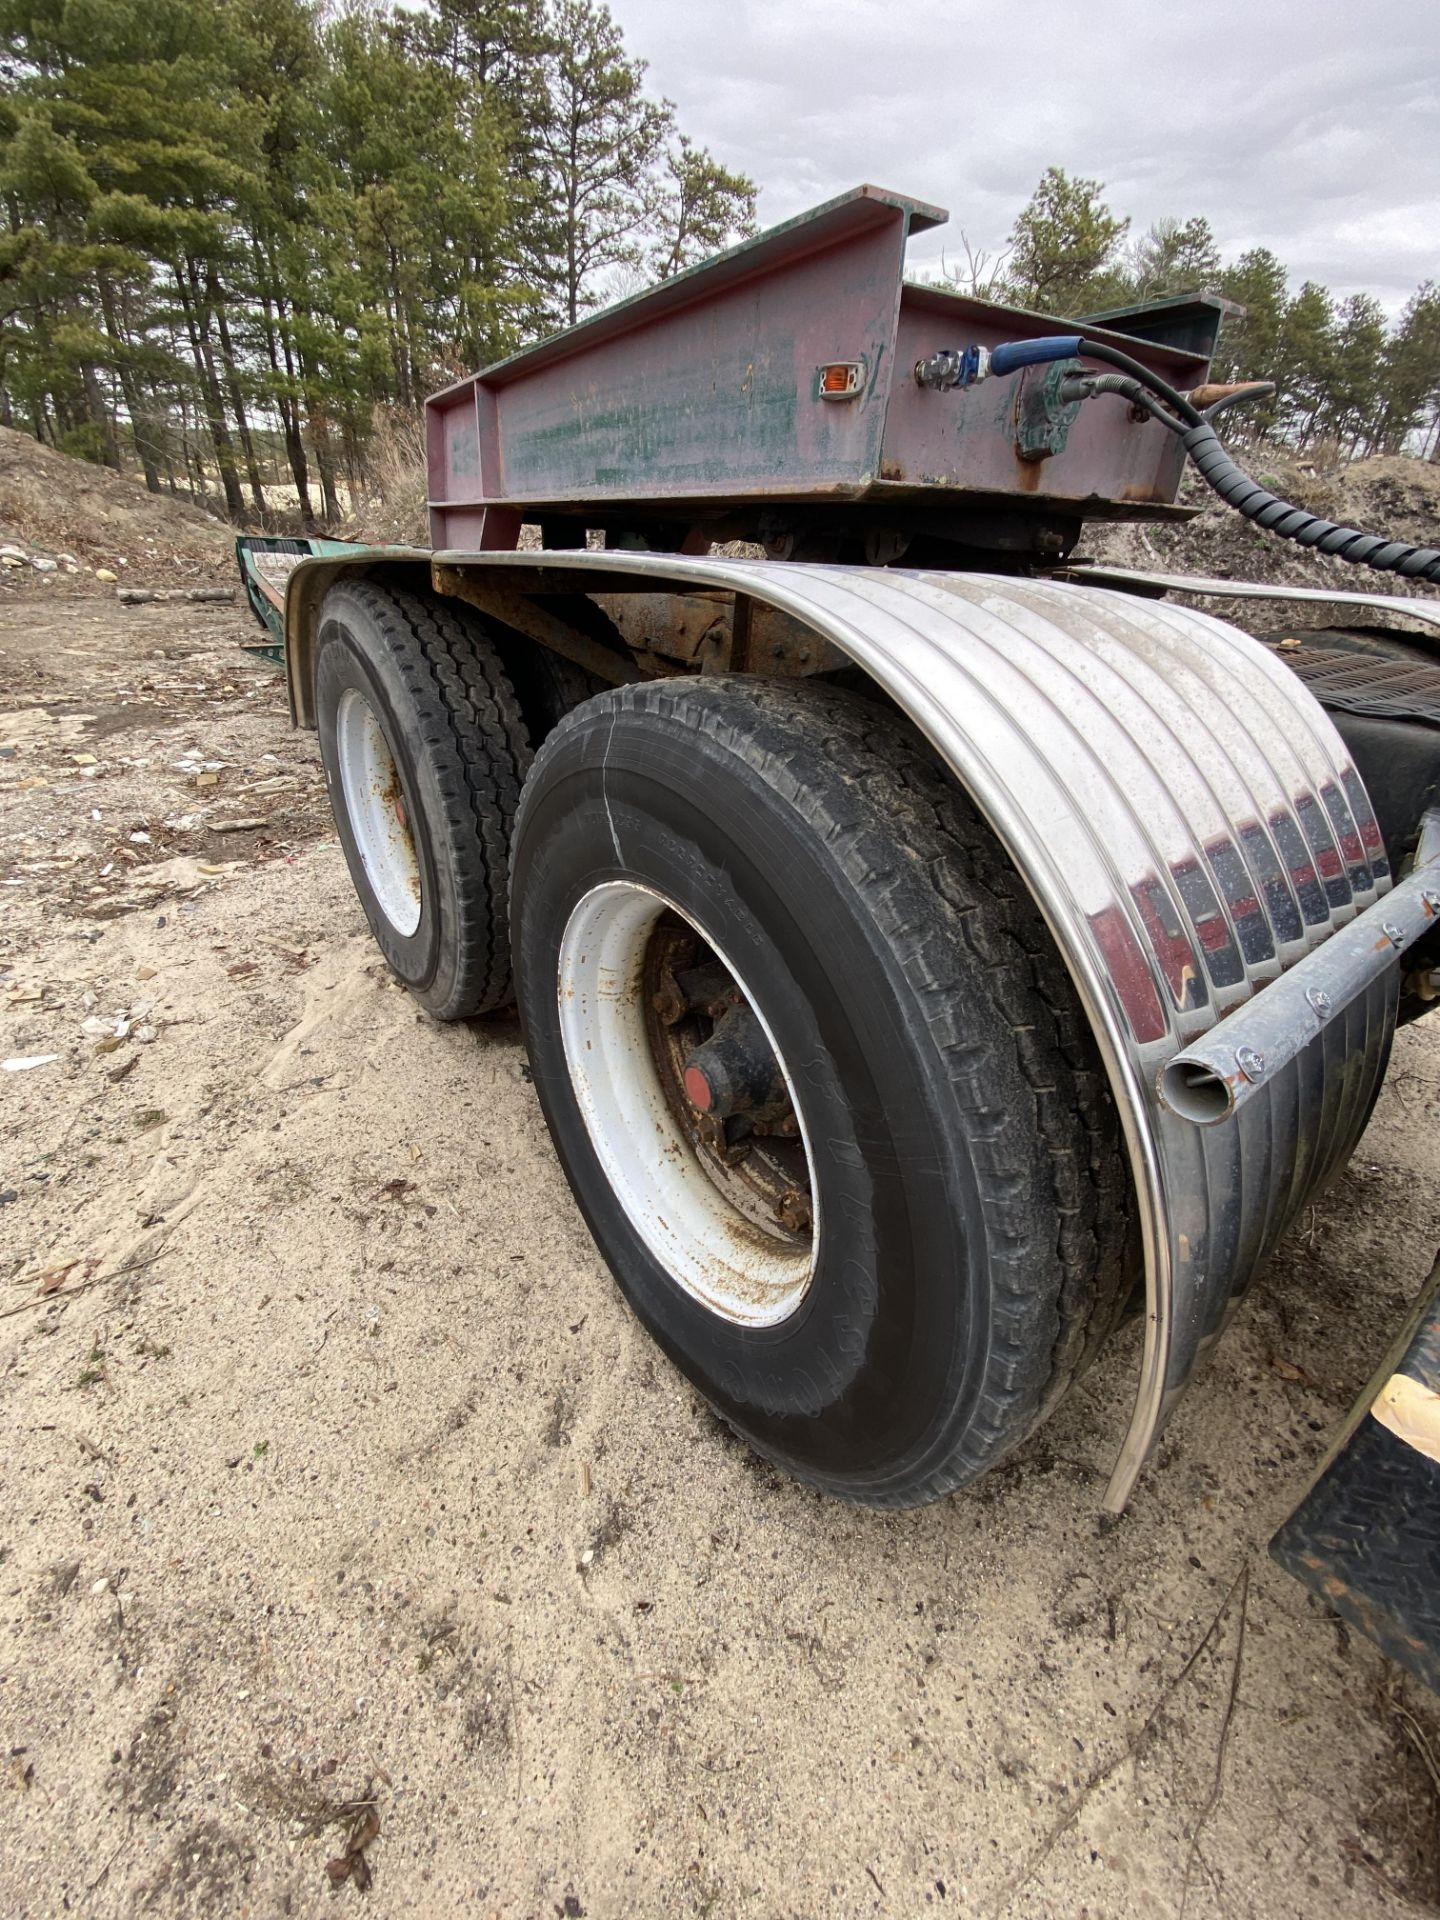 1986 Mack RD688SX Tandem Axle Tractor VIN 1M2P143Y8GA004351, Meter Reads 301,625 Miles, Day Cab, - Image 15 of 22